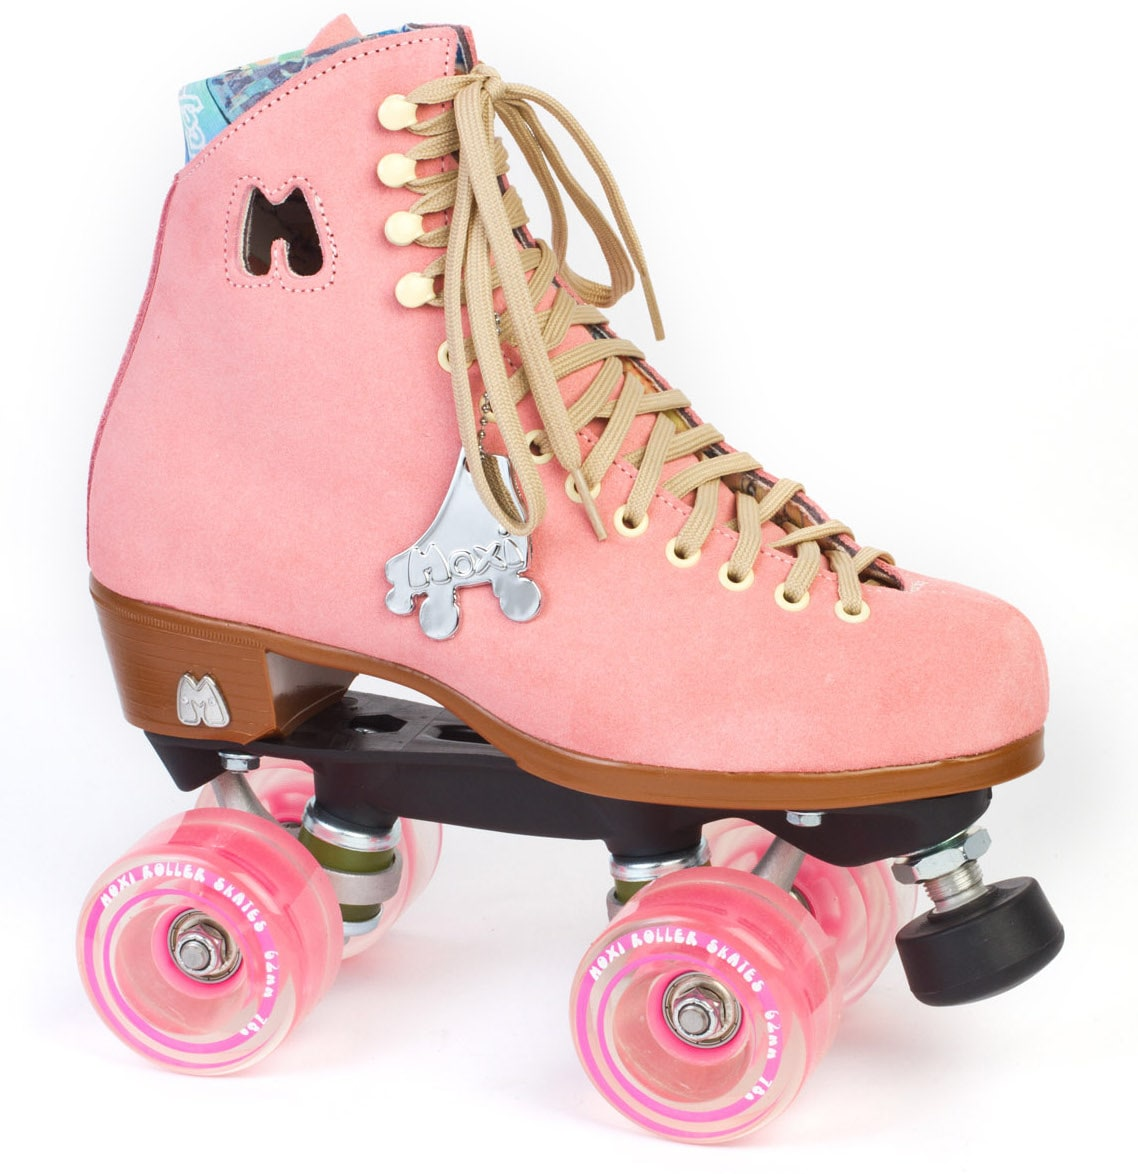 BStock Moxi Lolly Strawberry Quad Roller Skates  UK 7 (Slightly Marked)